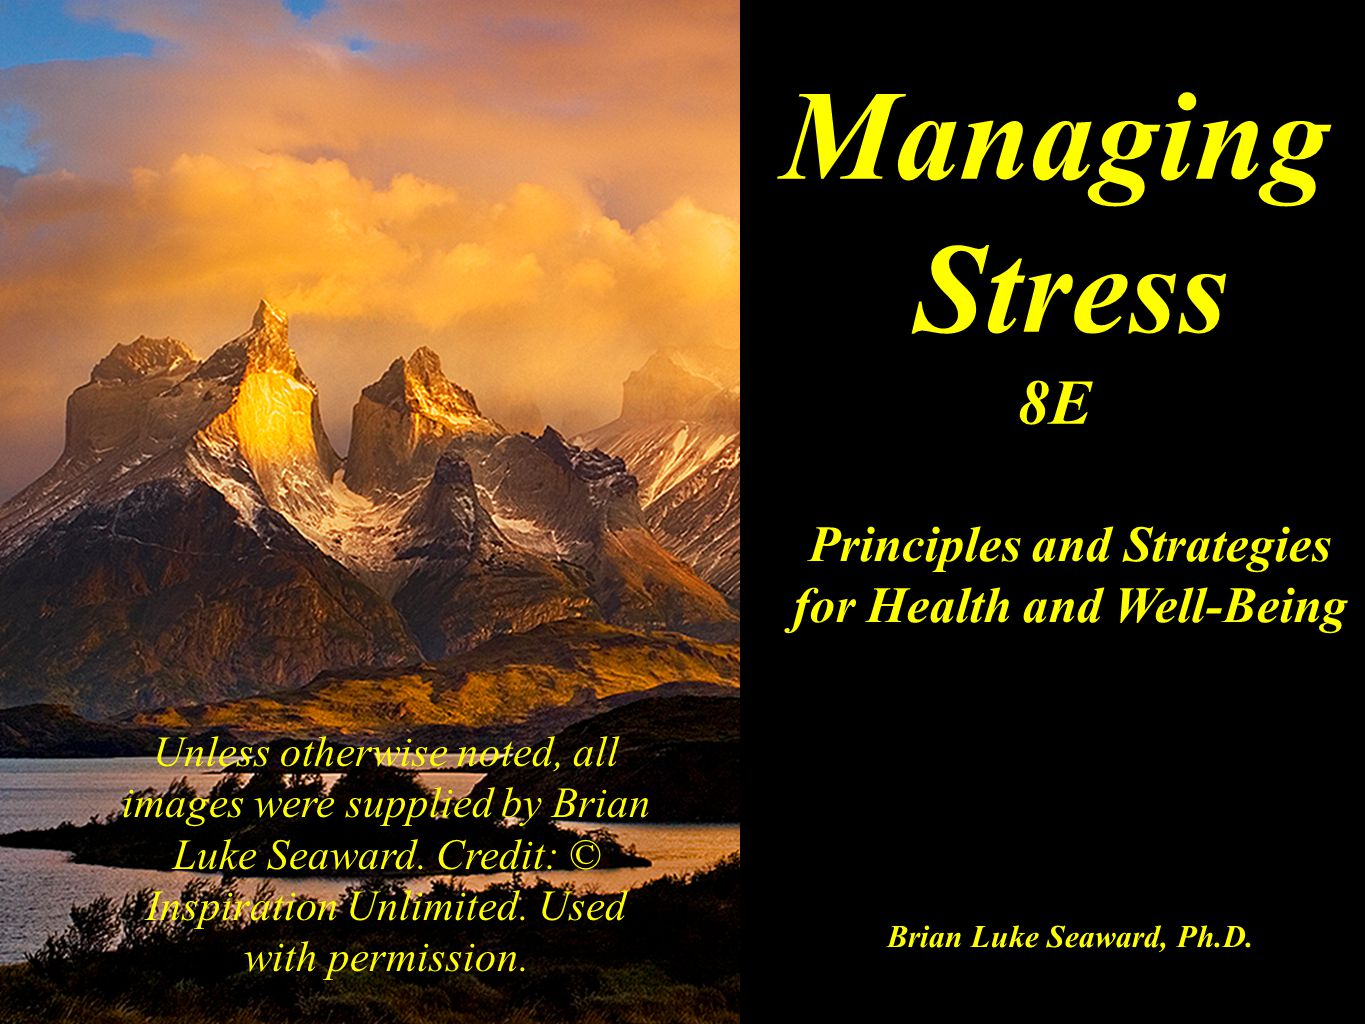 Managing Stress 8E Principles and Strategies for Health and Well-Being Brian Luke Seaward, Ph.D.